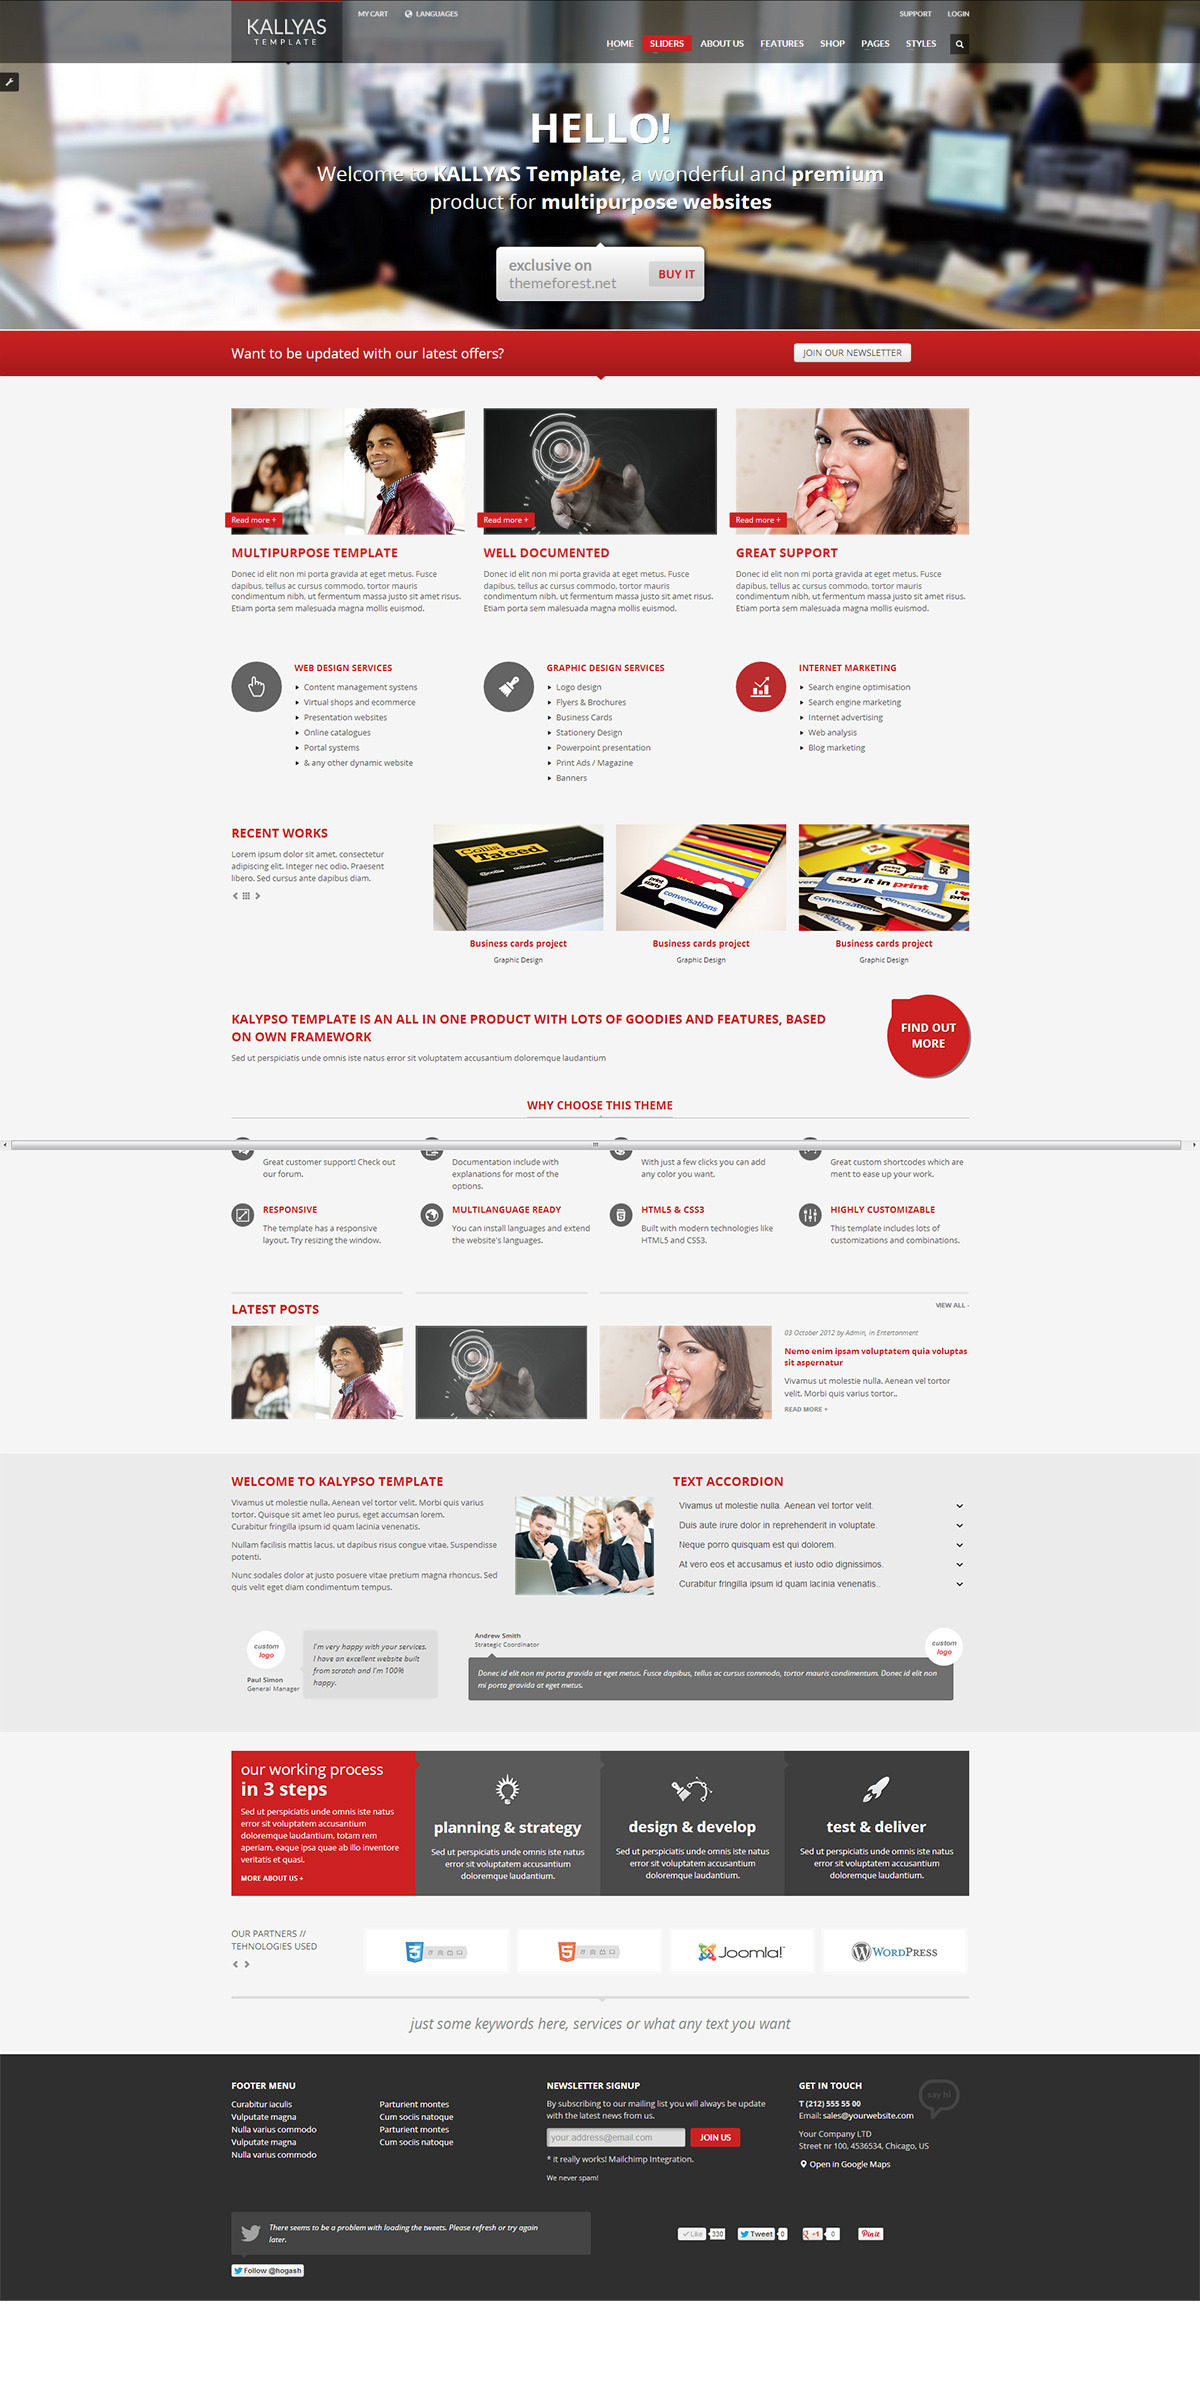 KALLYAS - Responsive Multipurpose Template - GENERAL PAGE 8